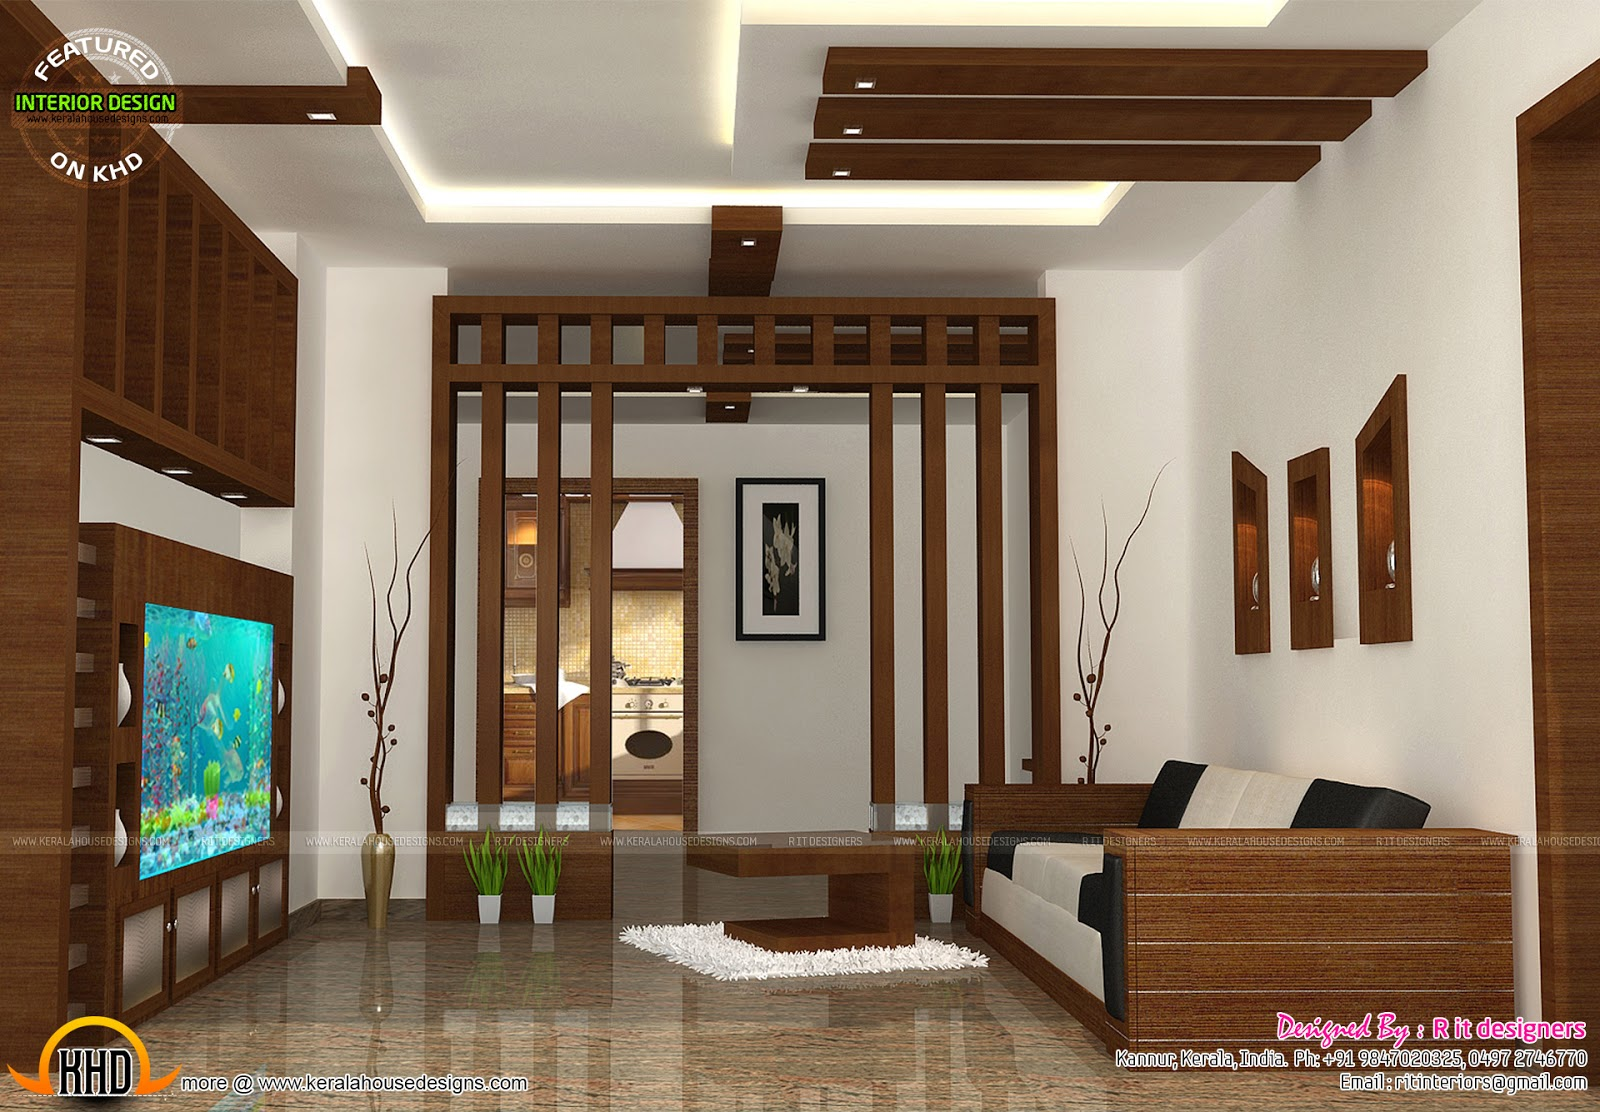 Wooden finish interiors kerala home design and floor plans Home interior design indian style